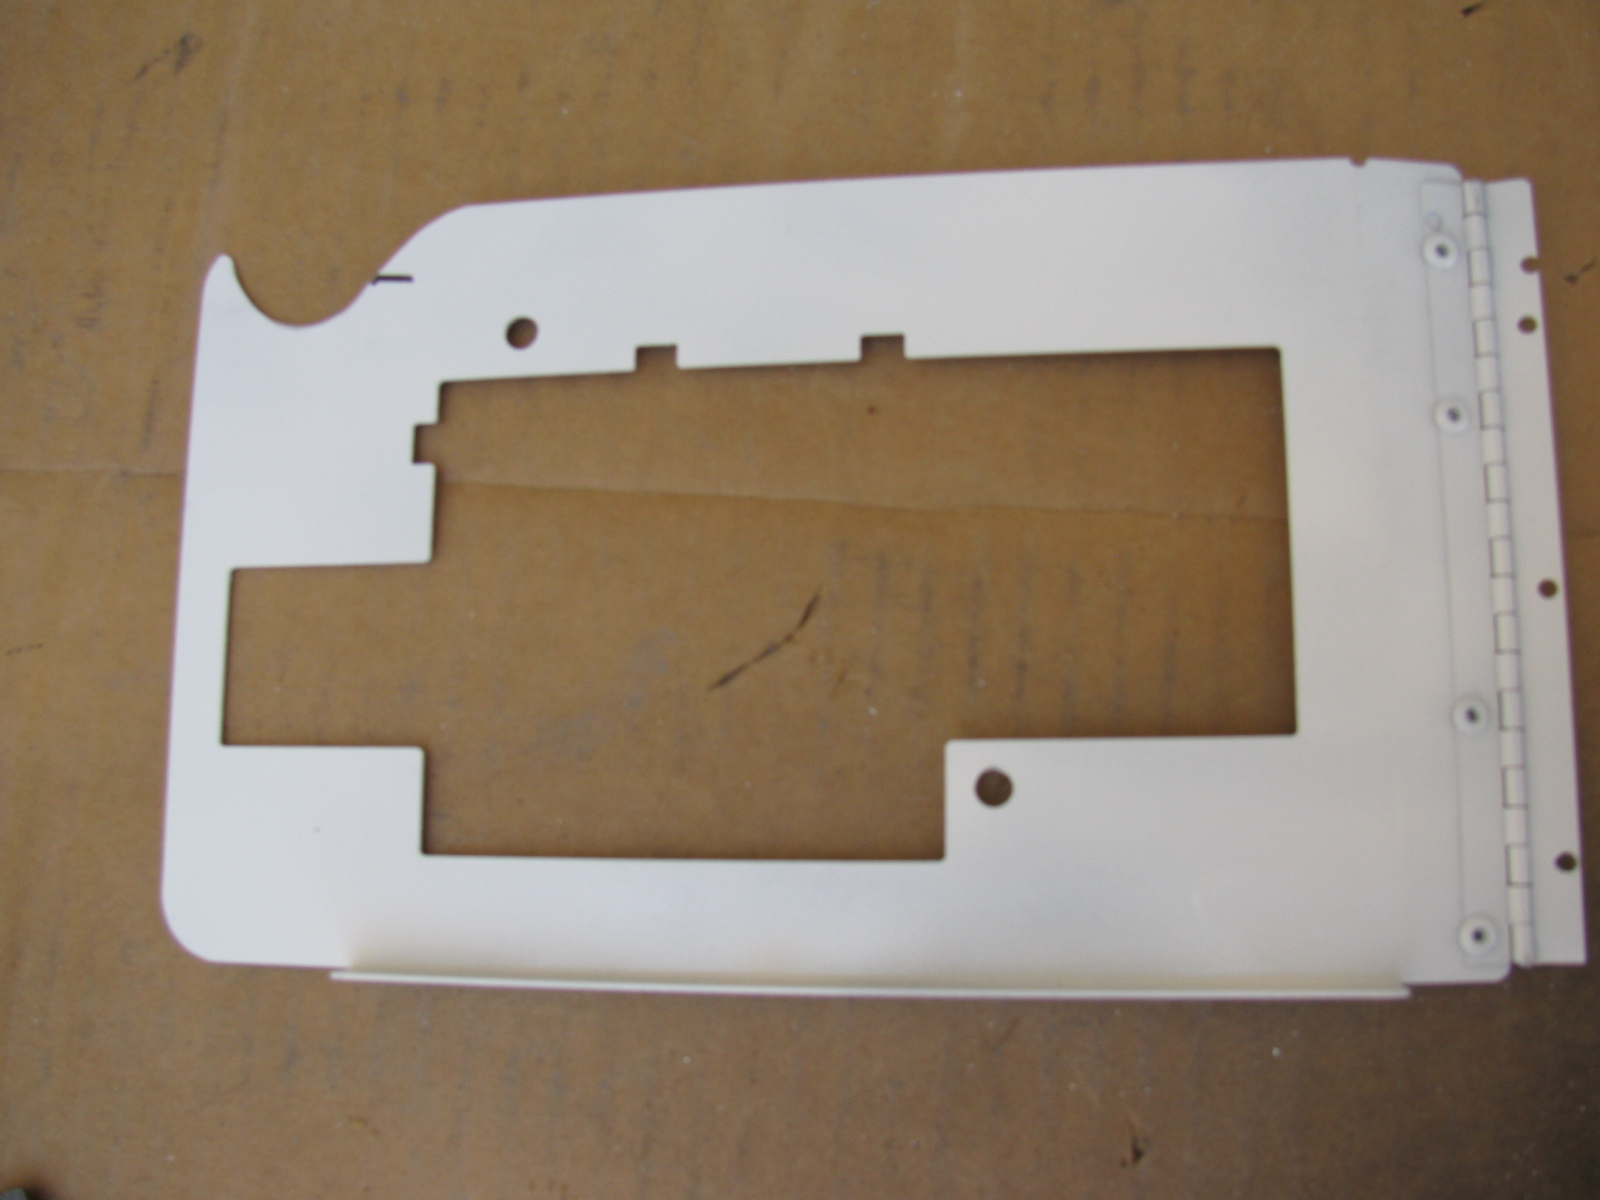 Factory Five Racing Type 65 Coupe Project Wayneyoshidakh6wz Page 2 Fuse Box In Old Silver Img 8408 Kh6wz Panel Painted